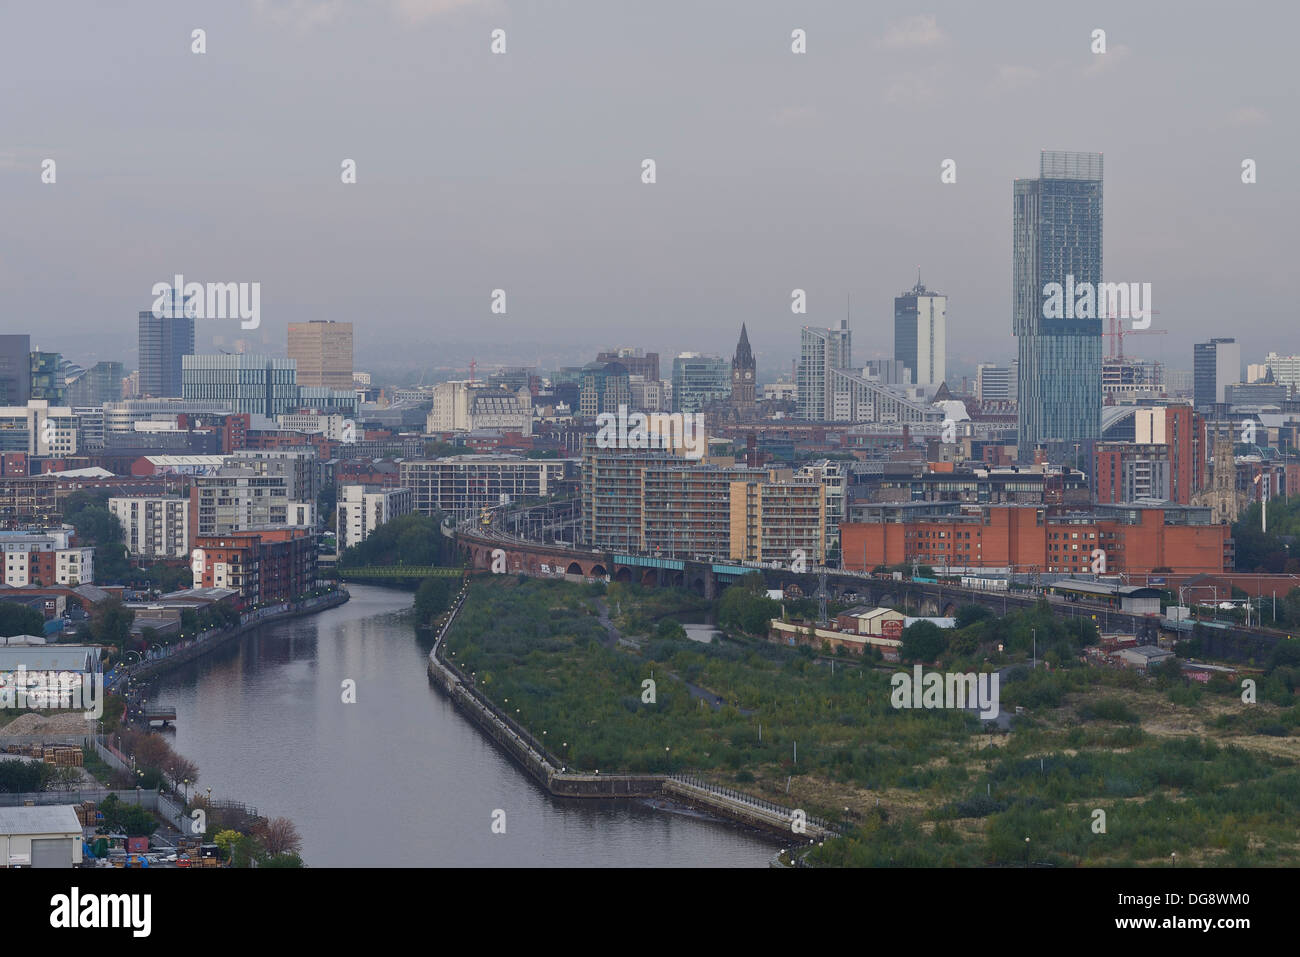 Manchester city centre landmark buildings and skyline including Beetham Tower and Town Hall - Stock Image